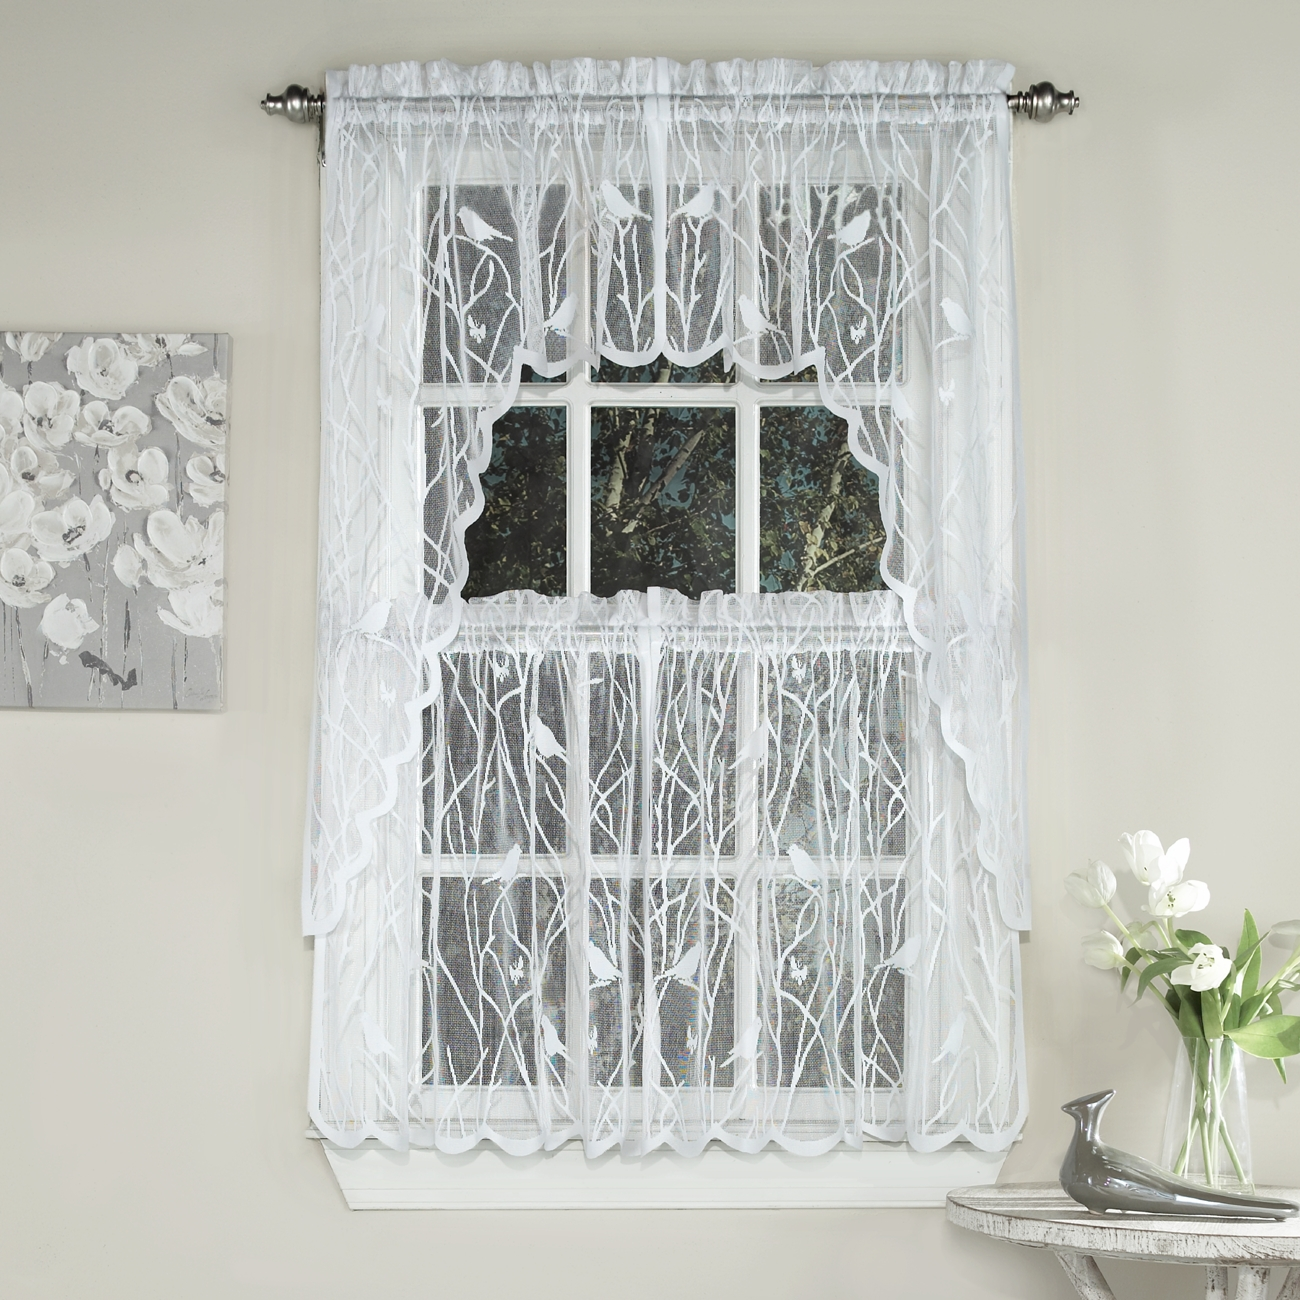 Kitchen Tier Curtains Sets Songbird Sheer Kitchen Curtains